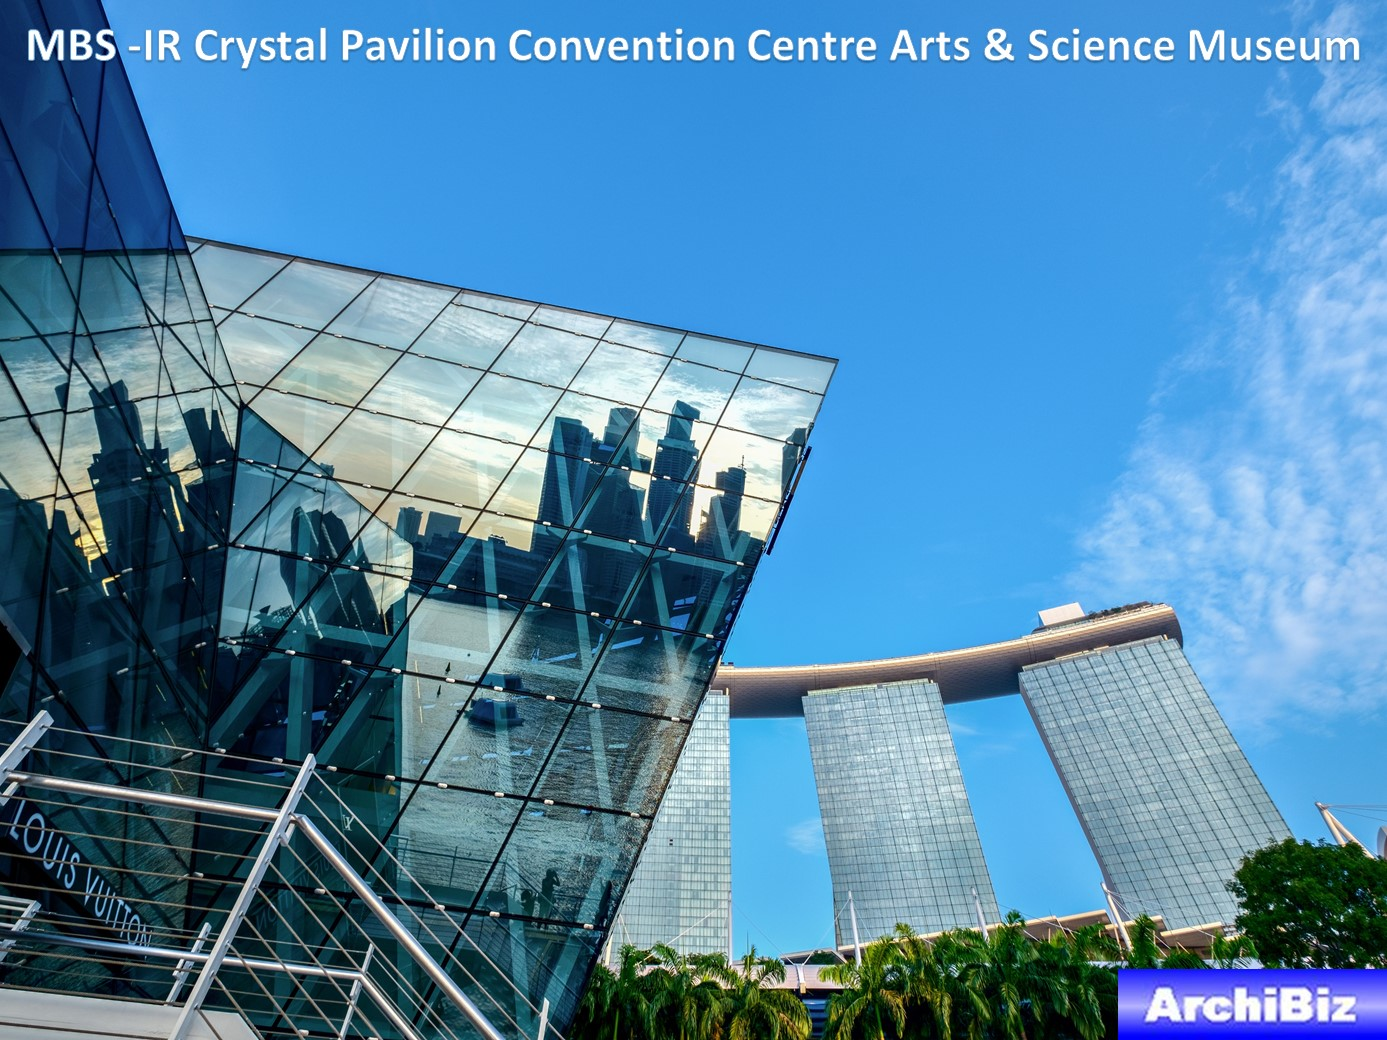 MBS -IR Crystal Pavilion Convention Centre Arts & Science Museum (16)